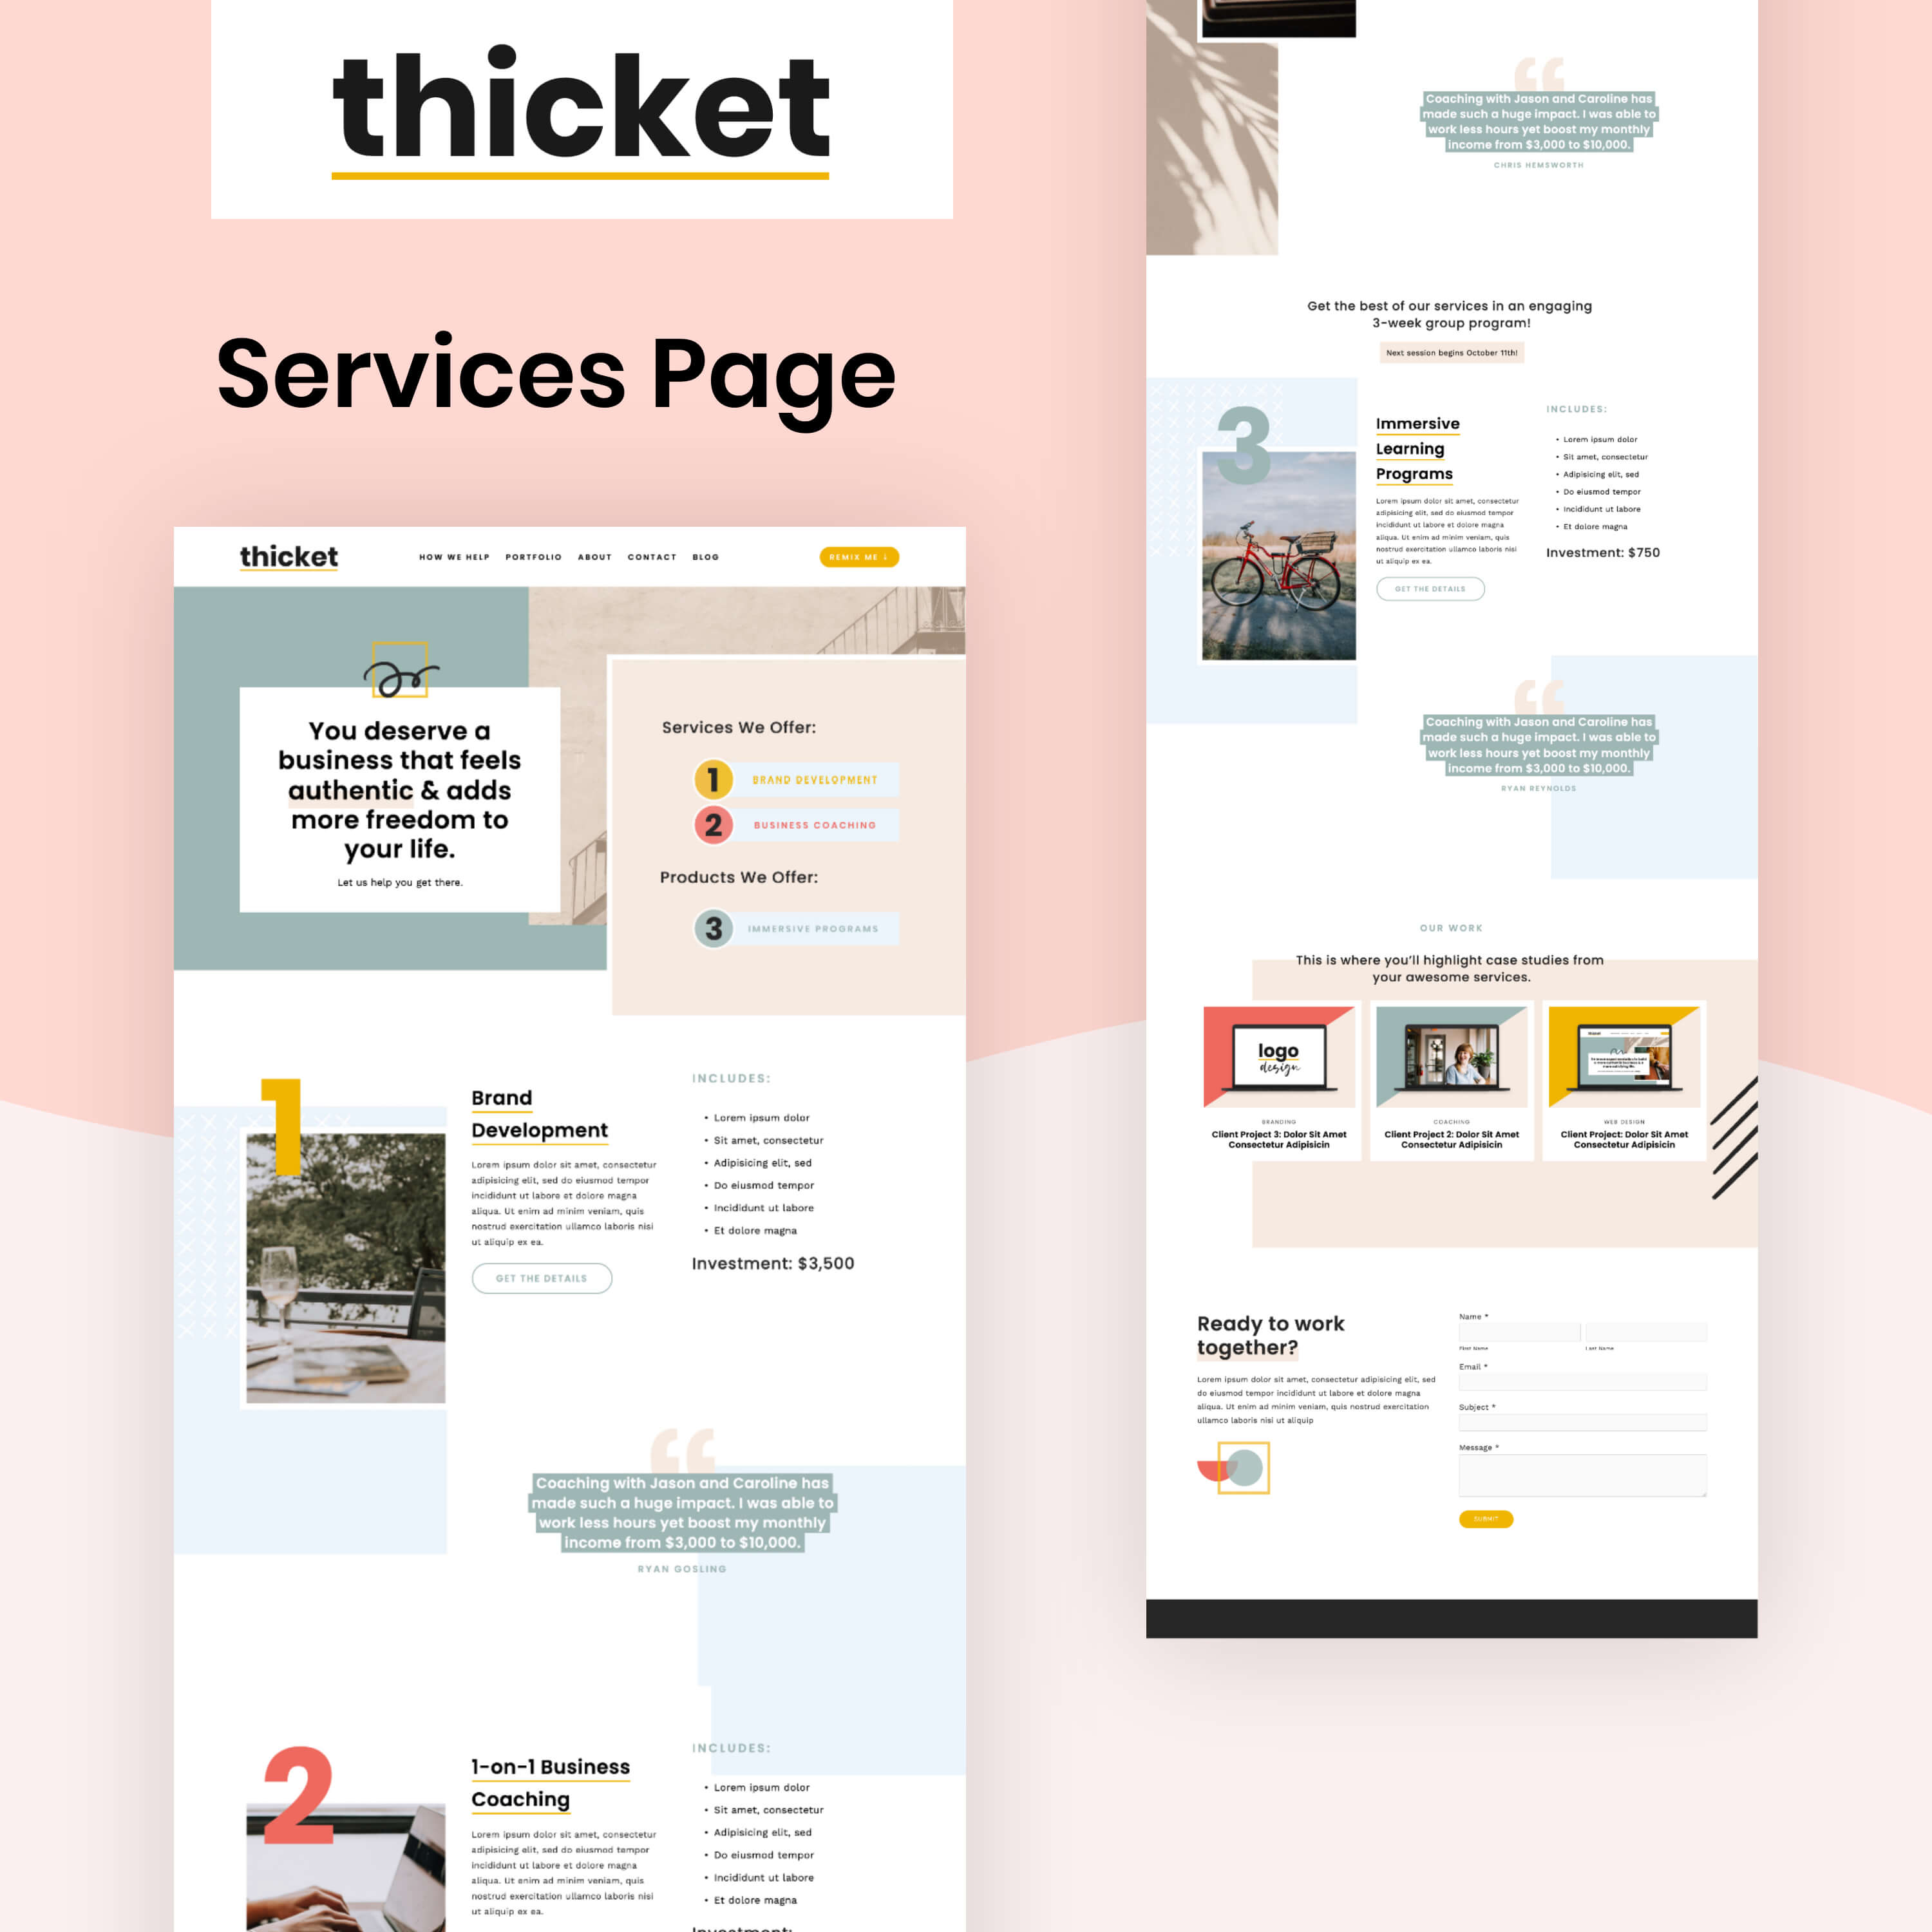 Thicket Services Page